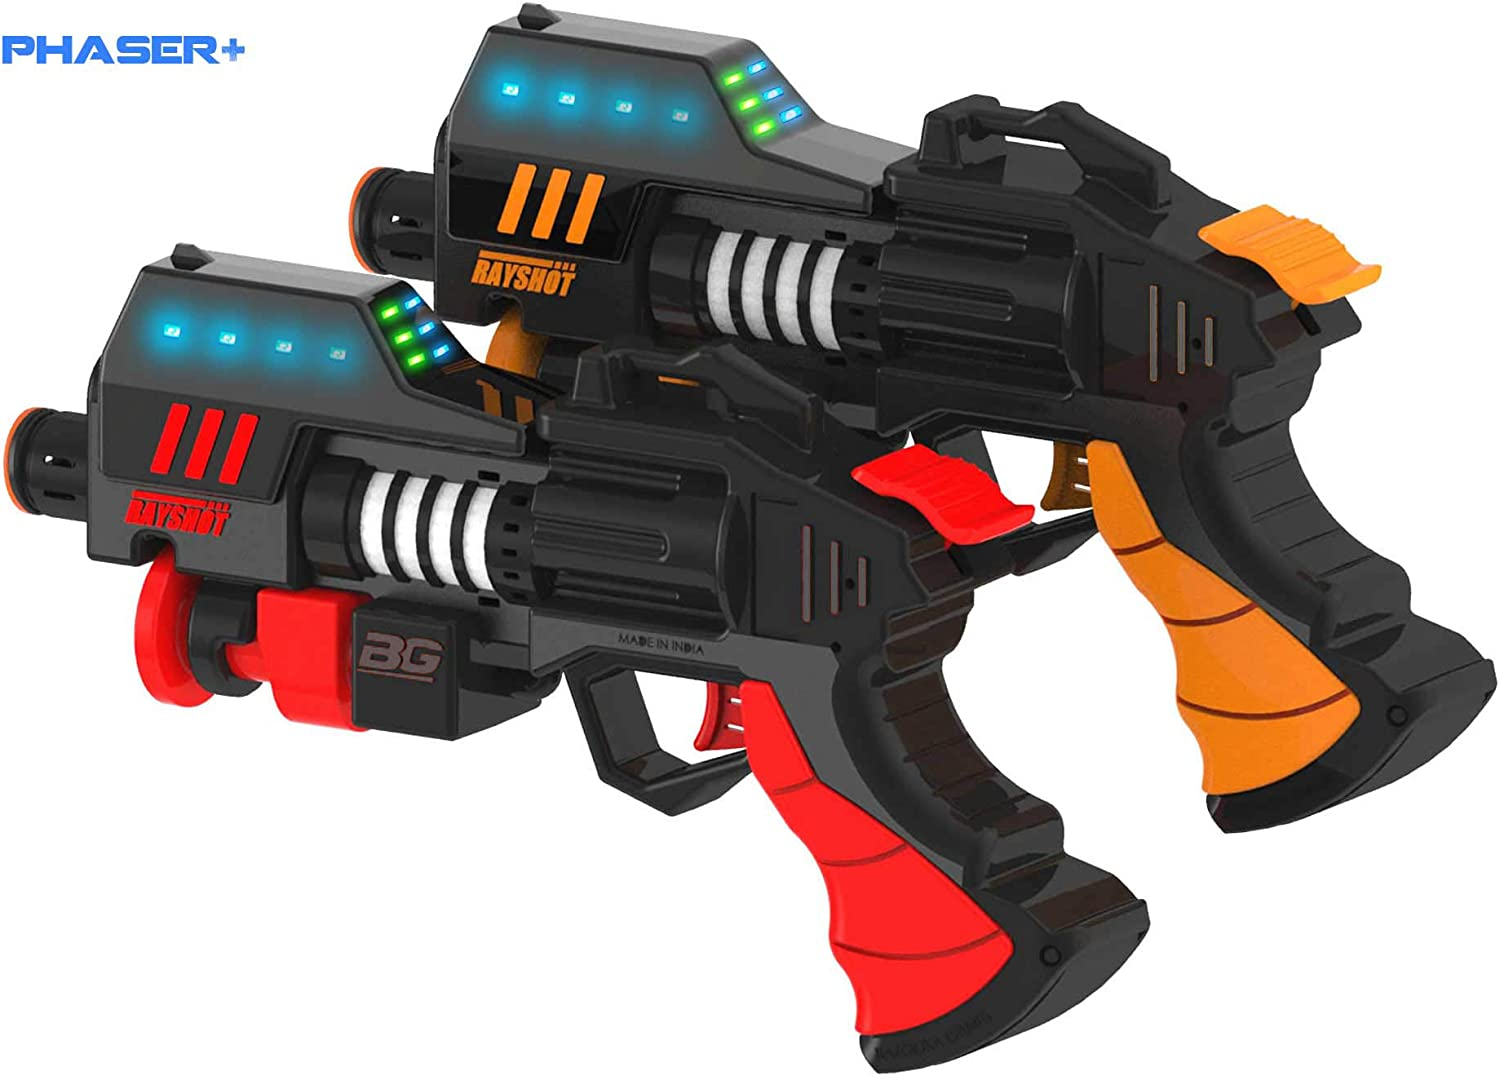 RAYSHOT Phaser Toy Gun Set